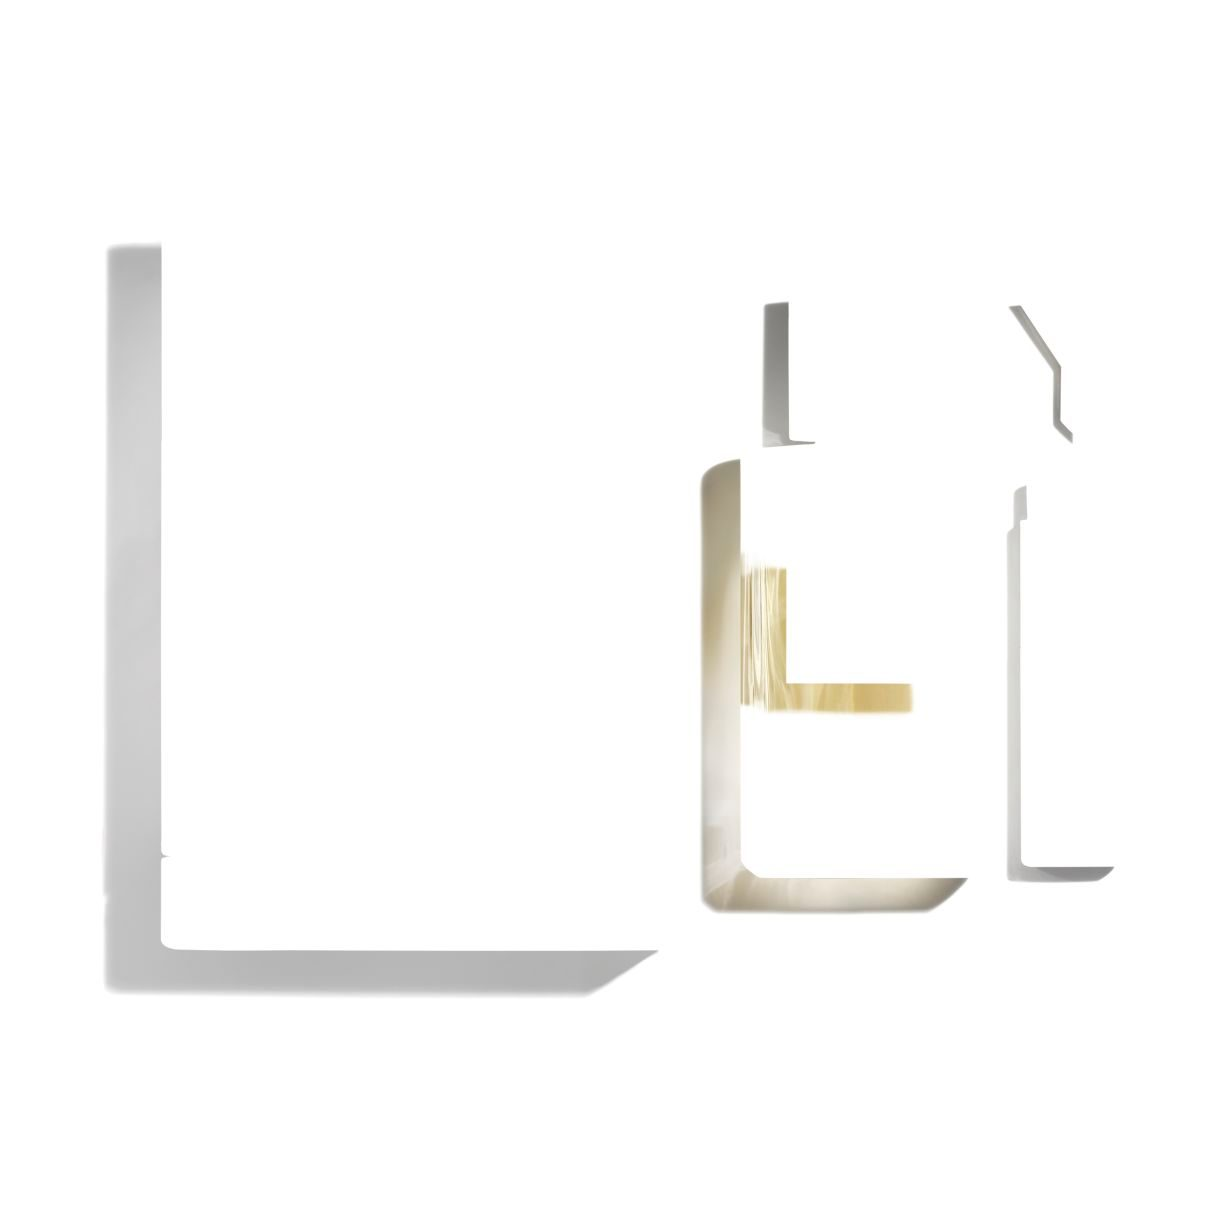 LES EXCLUSIFS DE CHANEL GARDÉNIA - COFFRET: 400 ML BOTTLE AND REFILLABLE TWIST AND SPRAY